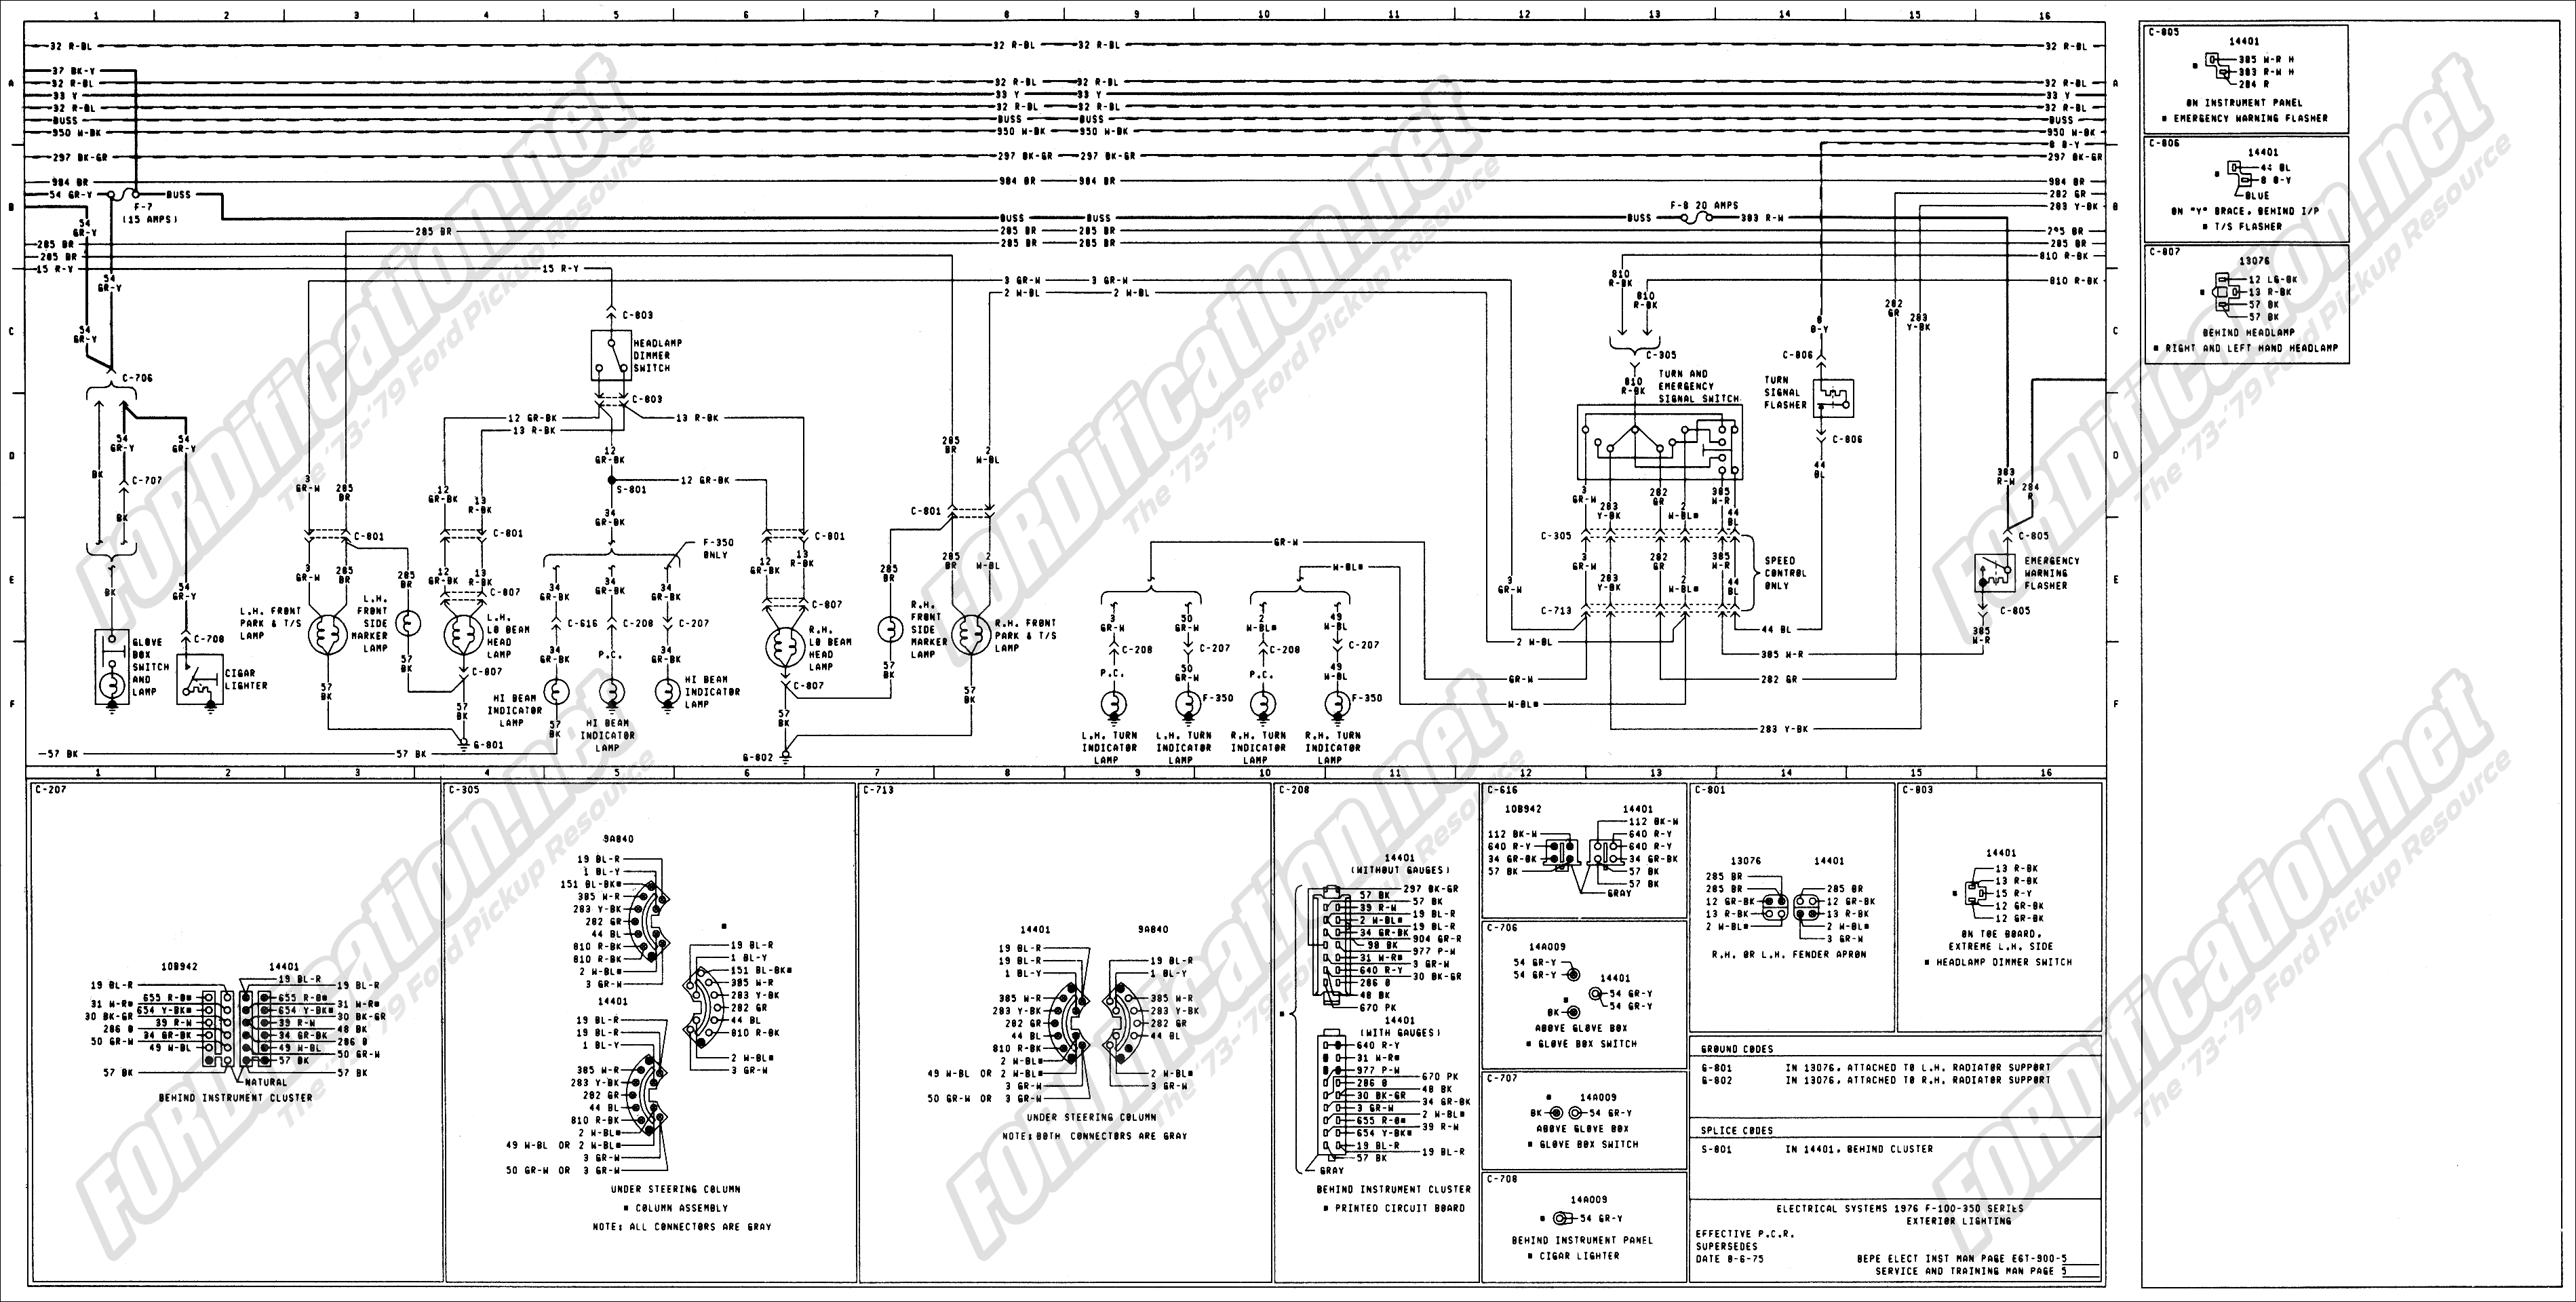 wiring_76master_5of9 1983 ford f100 wiring diagram wiring diagram simonand 1979 ford f100 fuse box diagram at soozxer.org